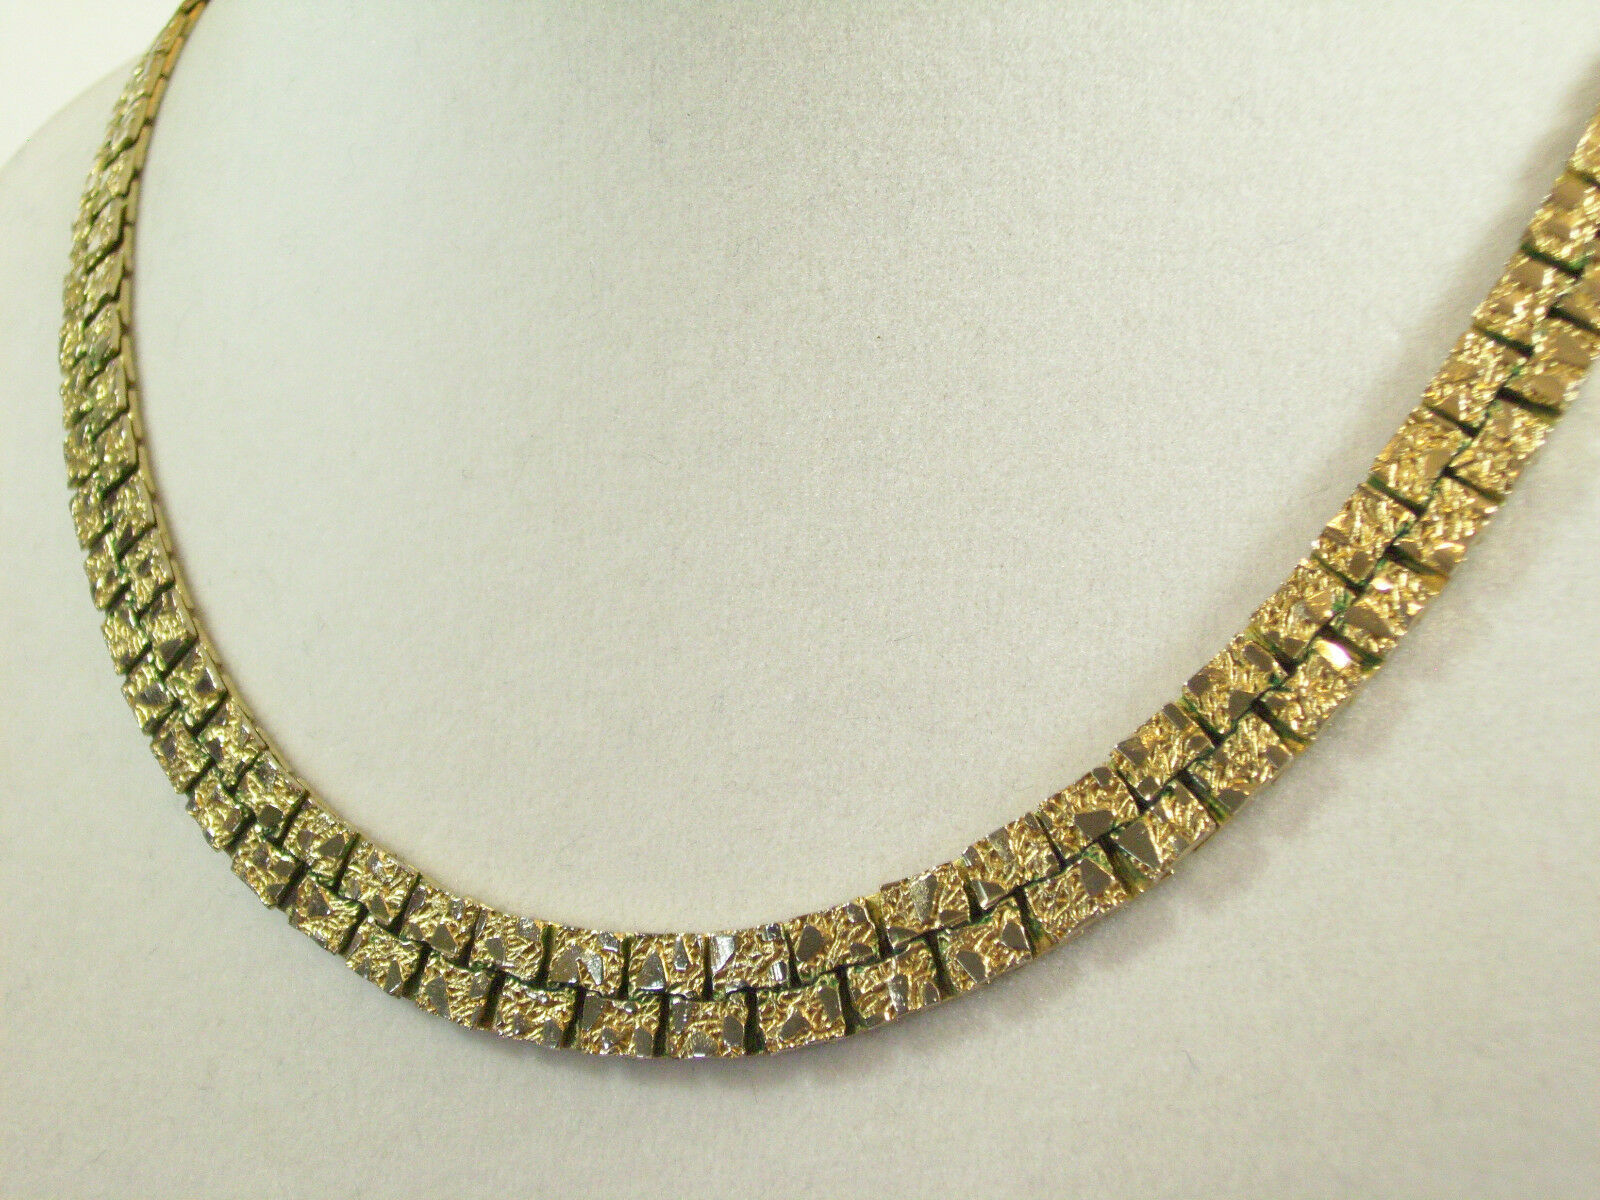 Gold NUGGET Style Link Necklace Plated Chain Vintage Classic Office Career image 5